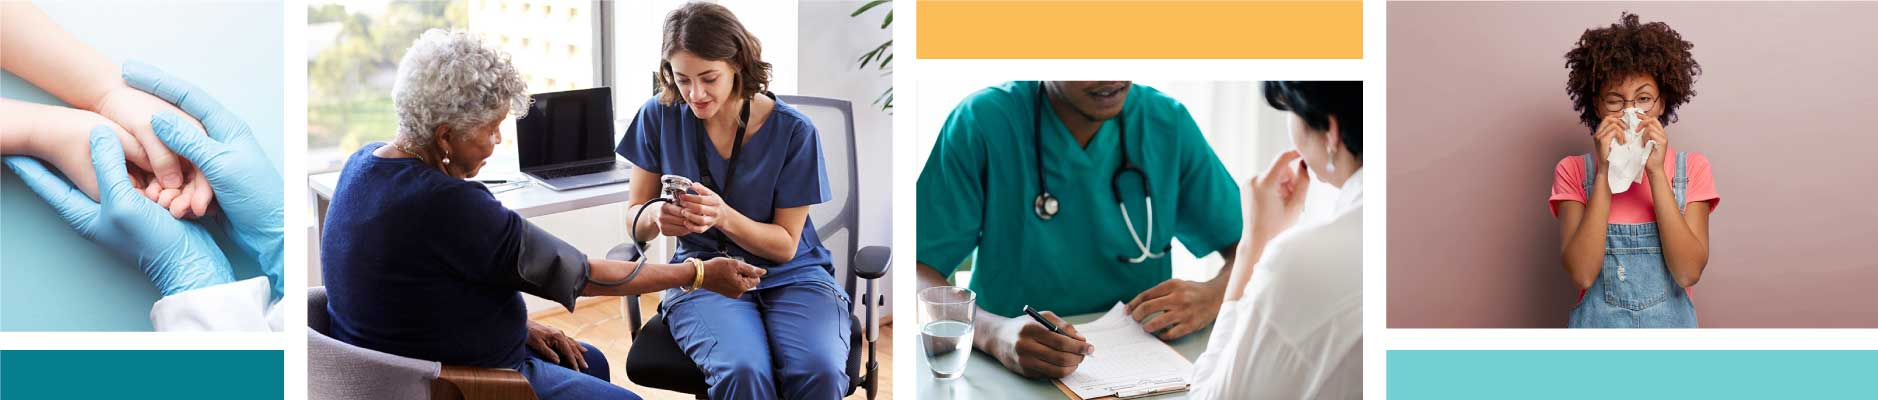 photo collage of medical professionals and patients